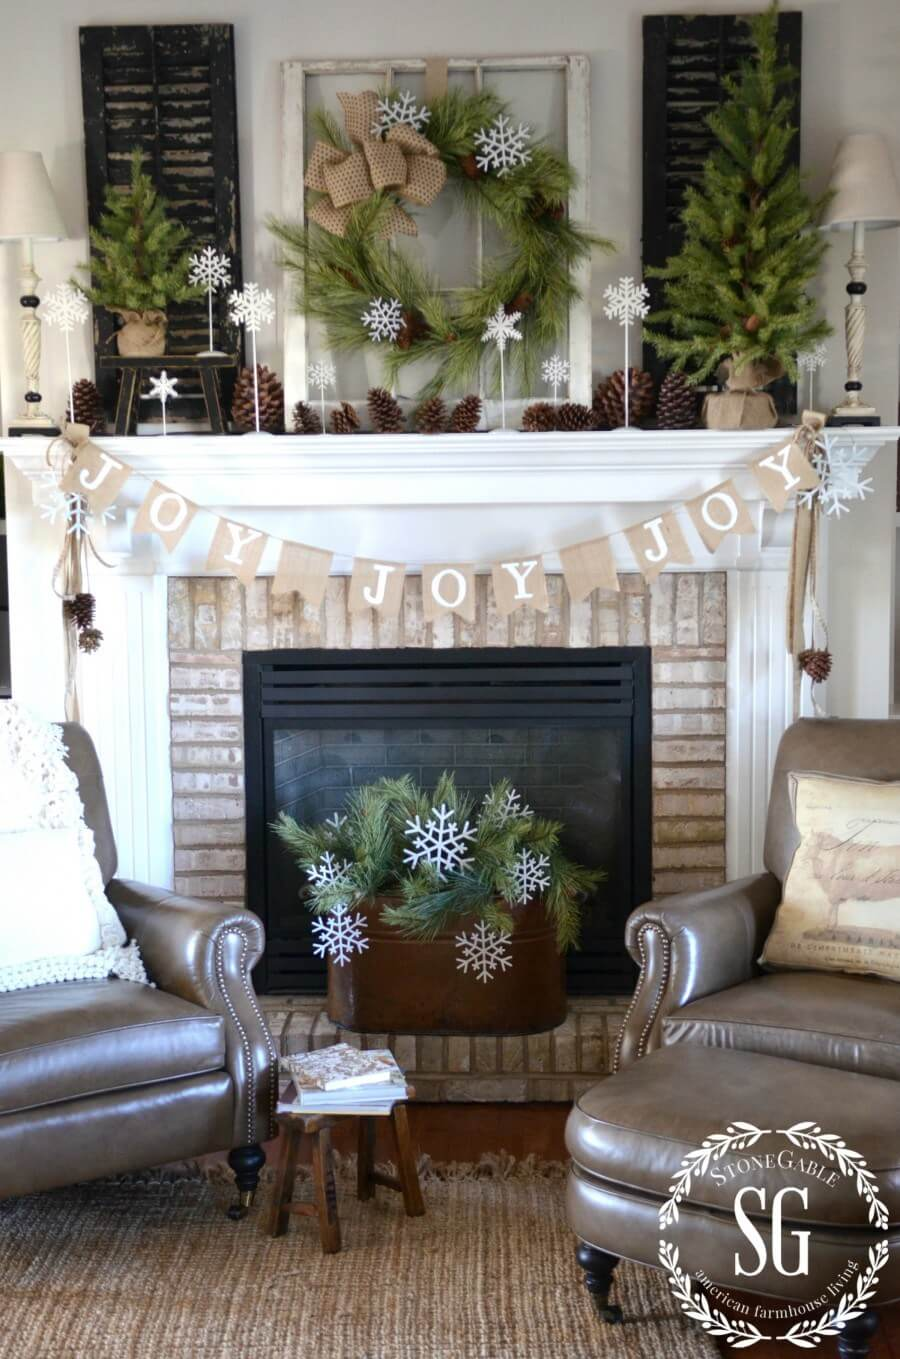 Snowflake and Pine Fireplace Decor